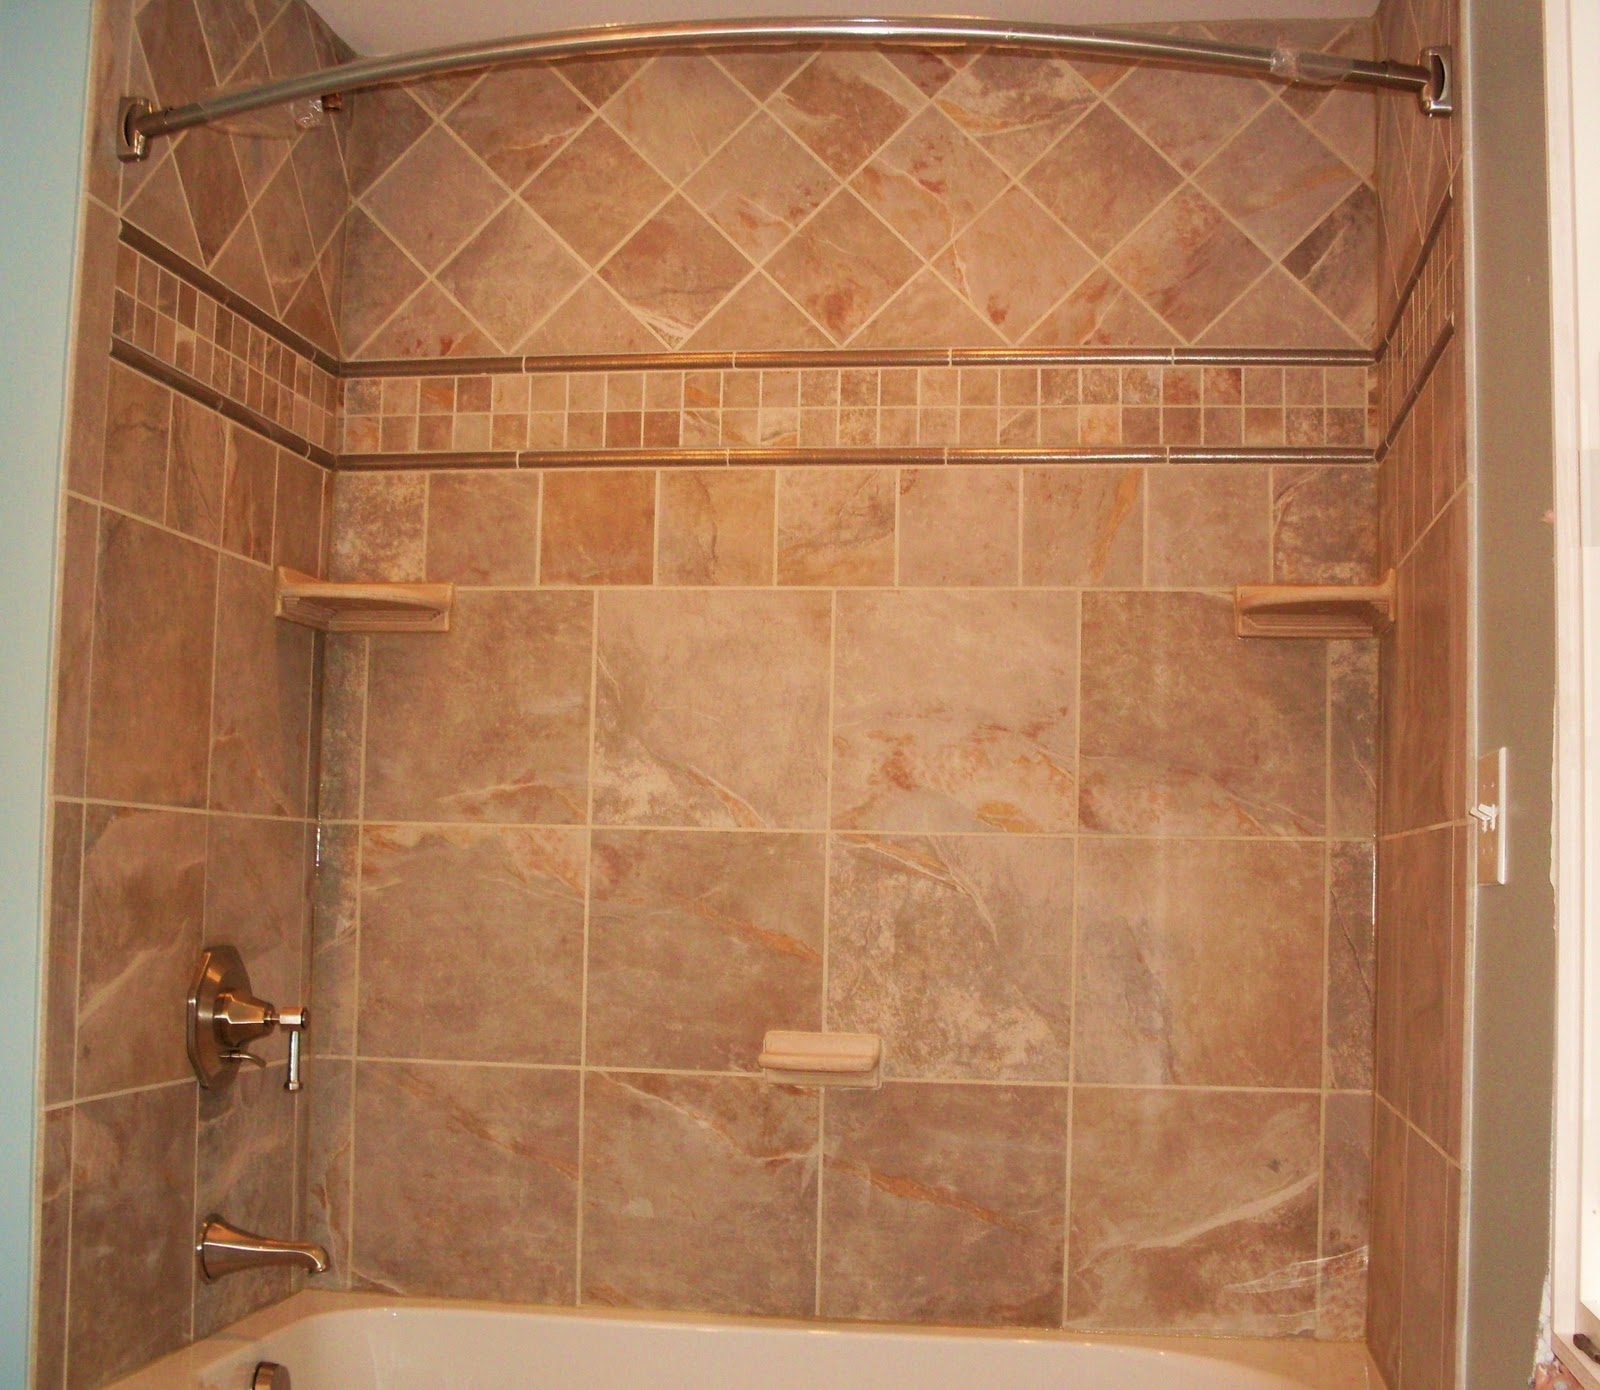 bathtub tiles remodel ideas on pinterest tile tub surround tub